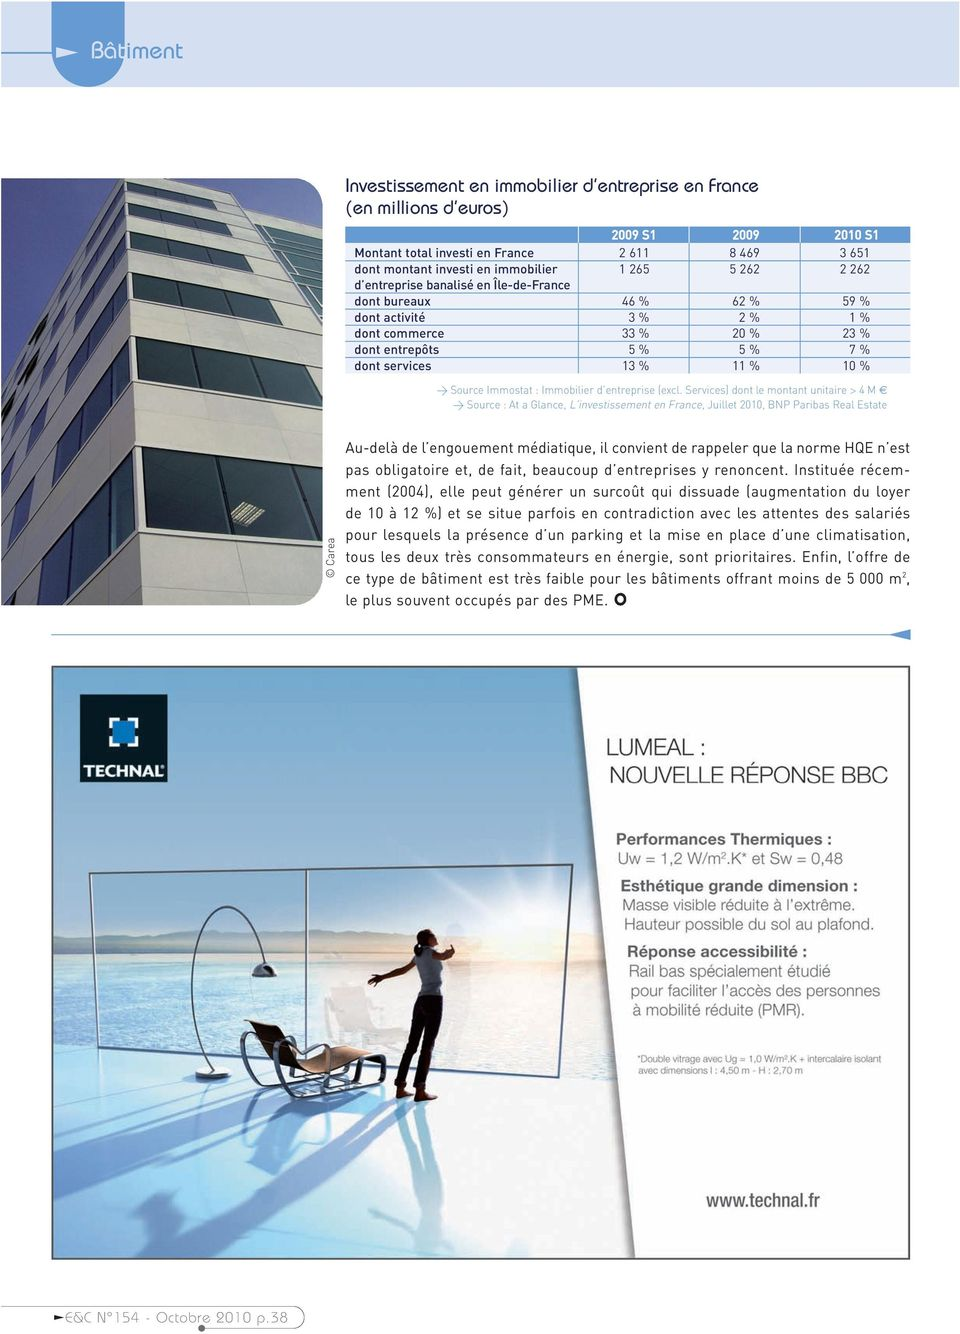 Immostat : Immobilier d entreprise (excl.